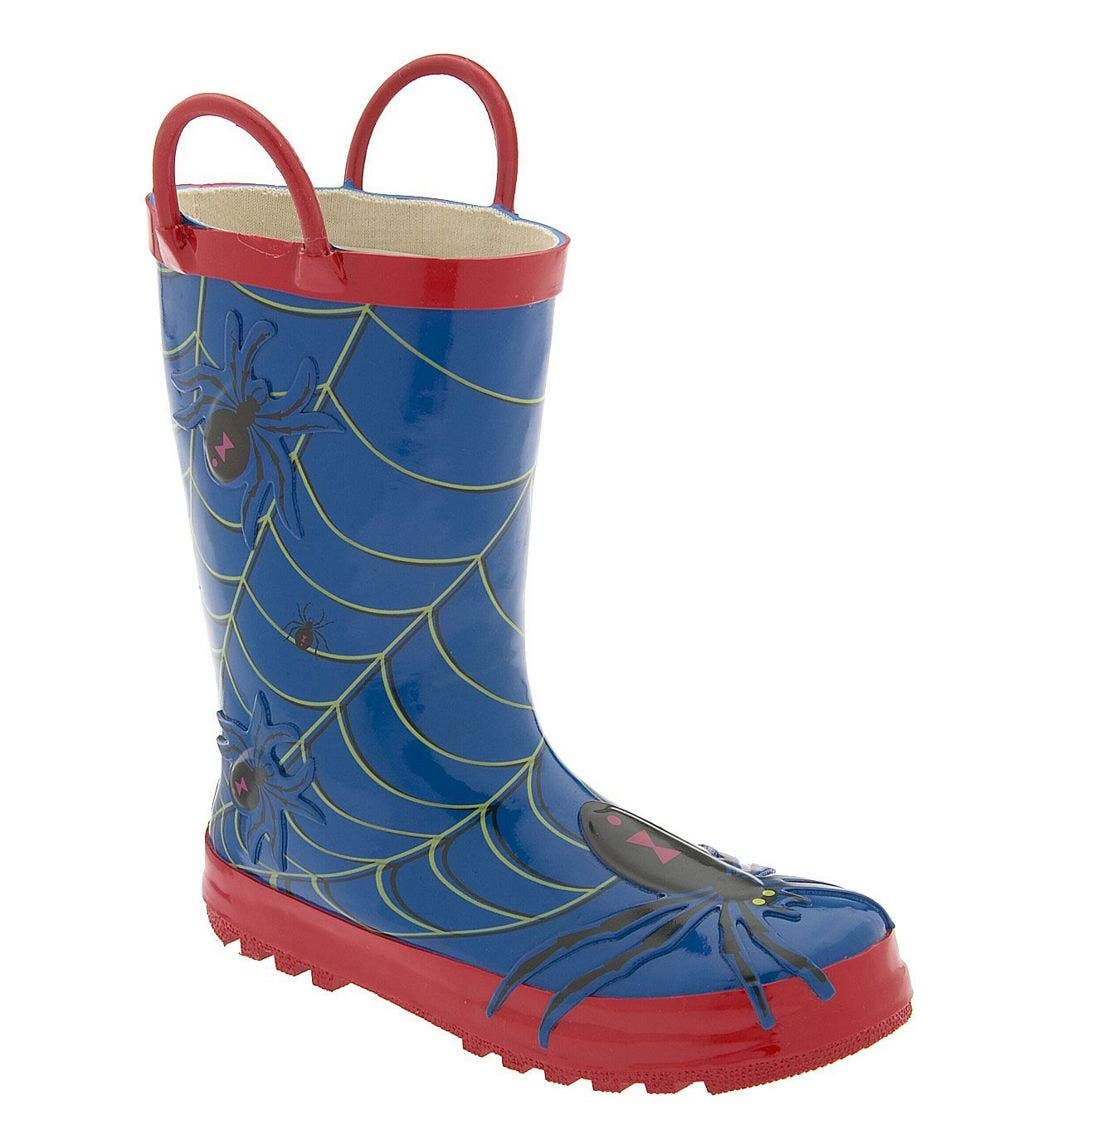 Alternate Image 1 Selected - Western Chief 'Spider' Boot (Toddler & Little Kids)